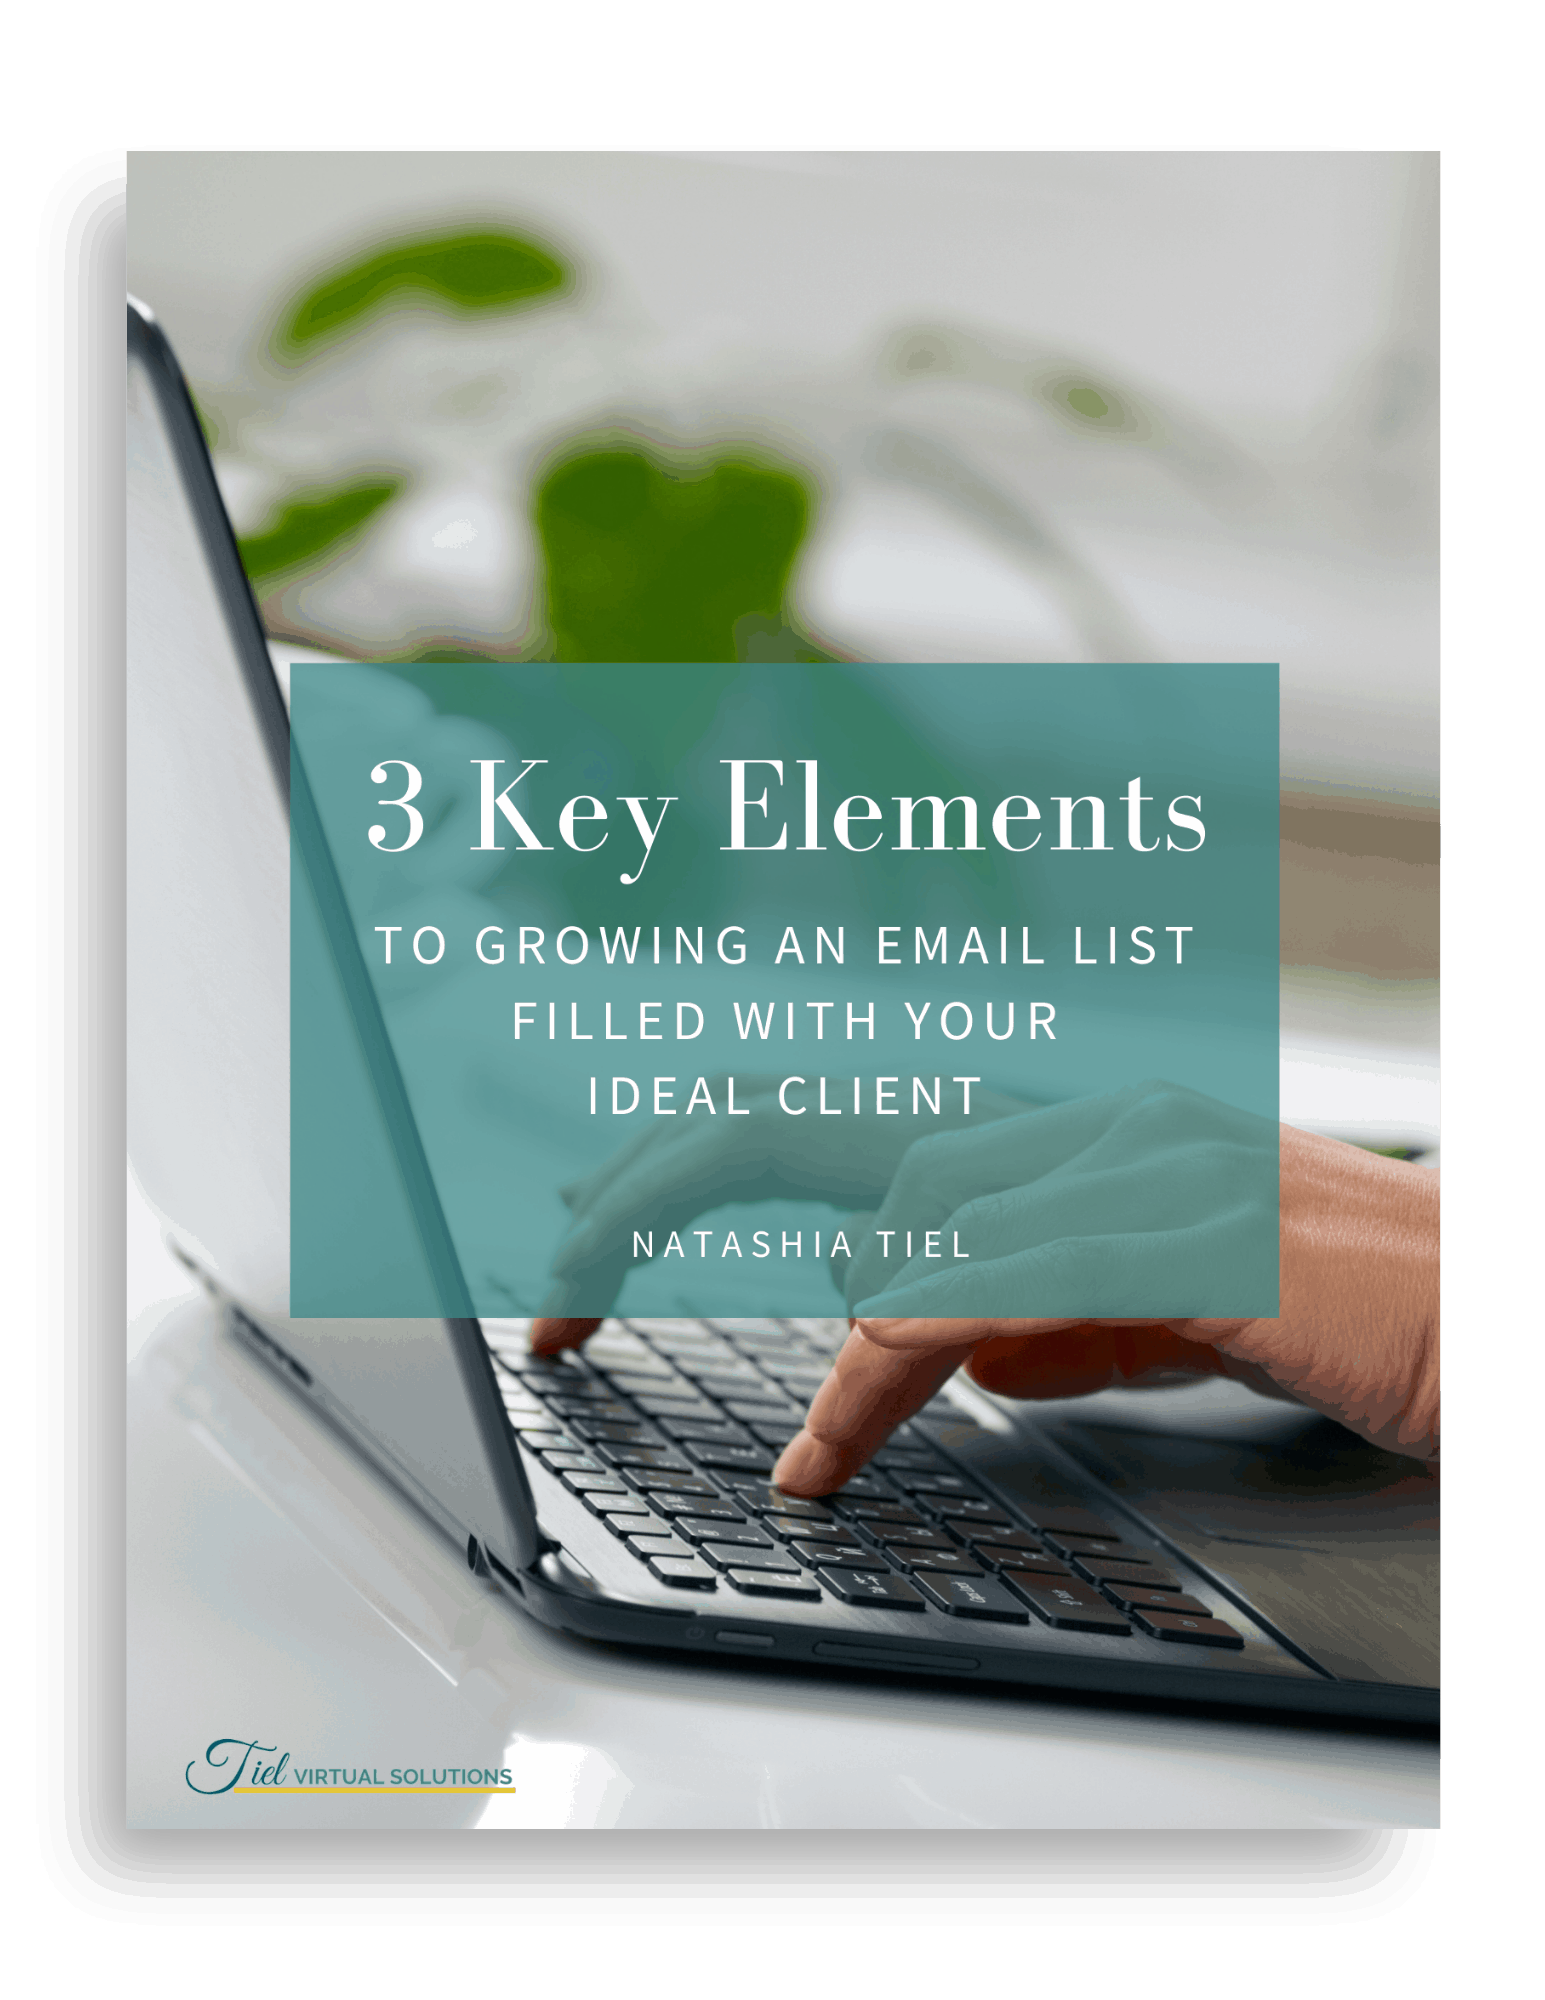 3 key elements to growing an email list filled with your ideal client